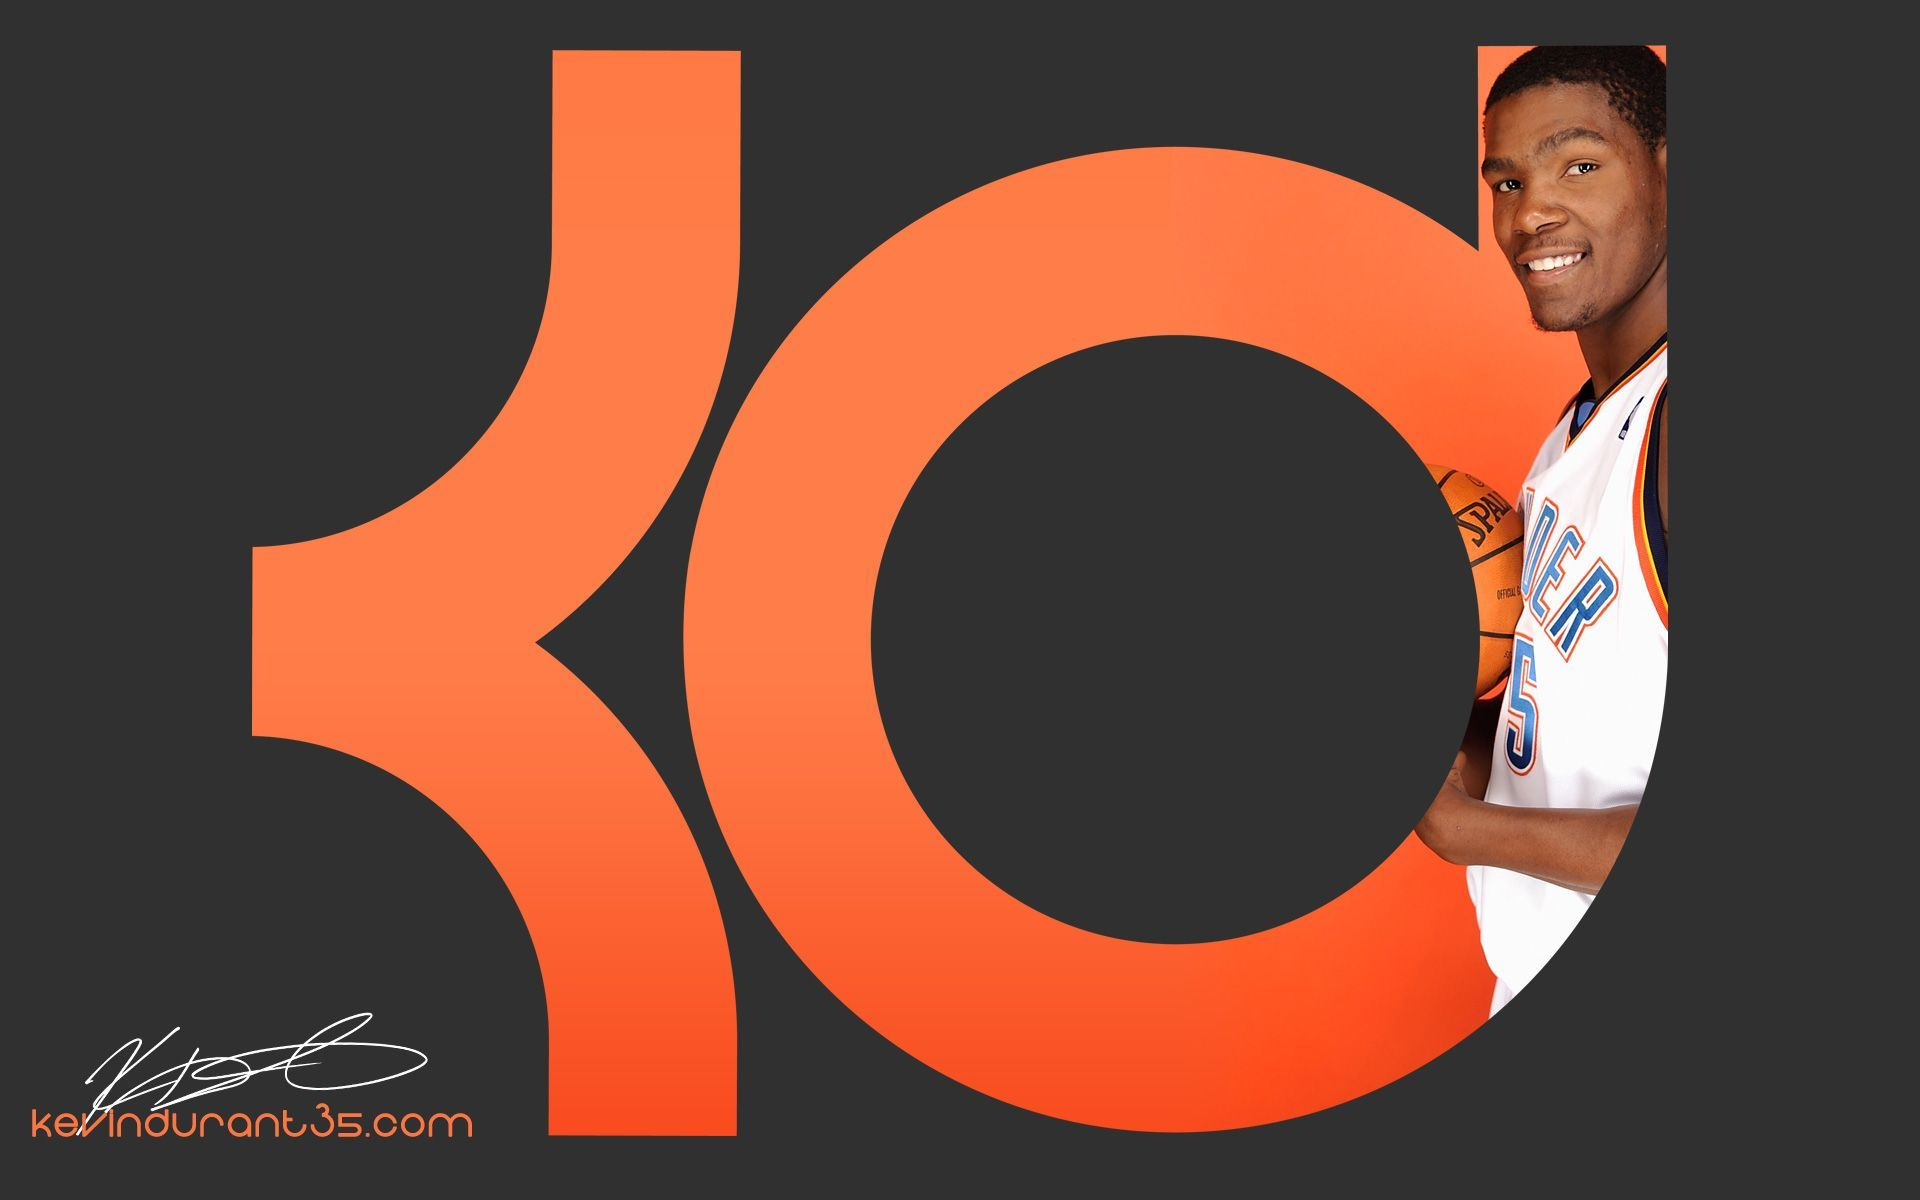 Kevin durant logo wallpaper   SF Wallpaper 1920x1200